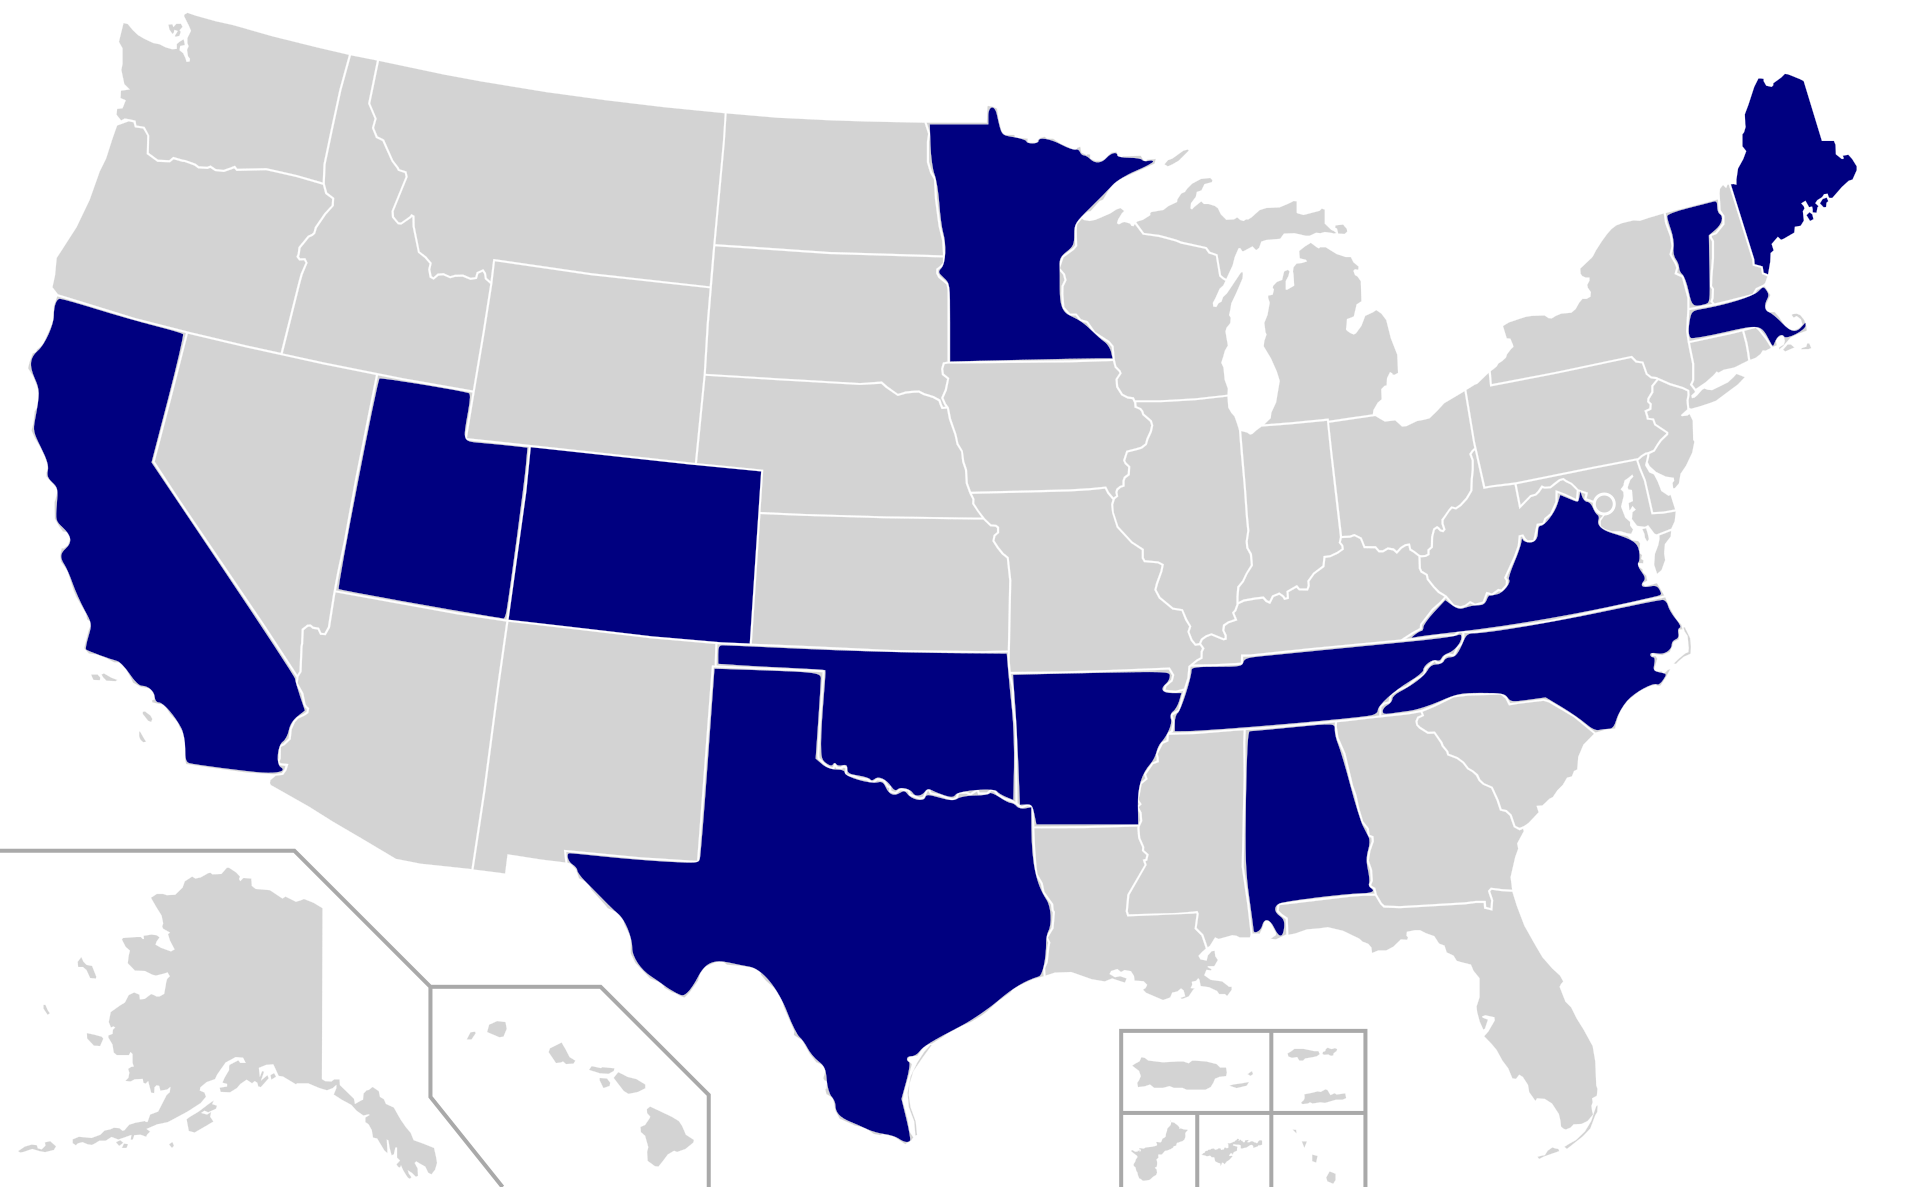 The closest state to Minnesota that will vote on Super Tuesday is Colorado, which is a good 600 miles away. All the other states are in the South or on the coasts.